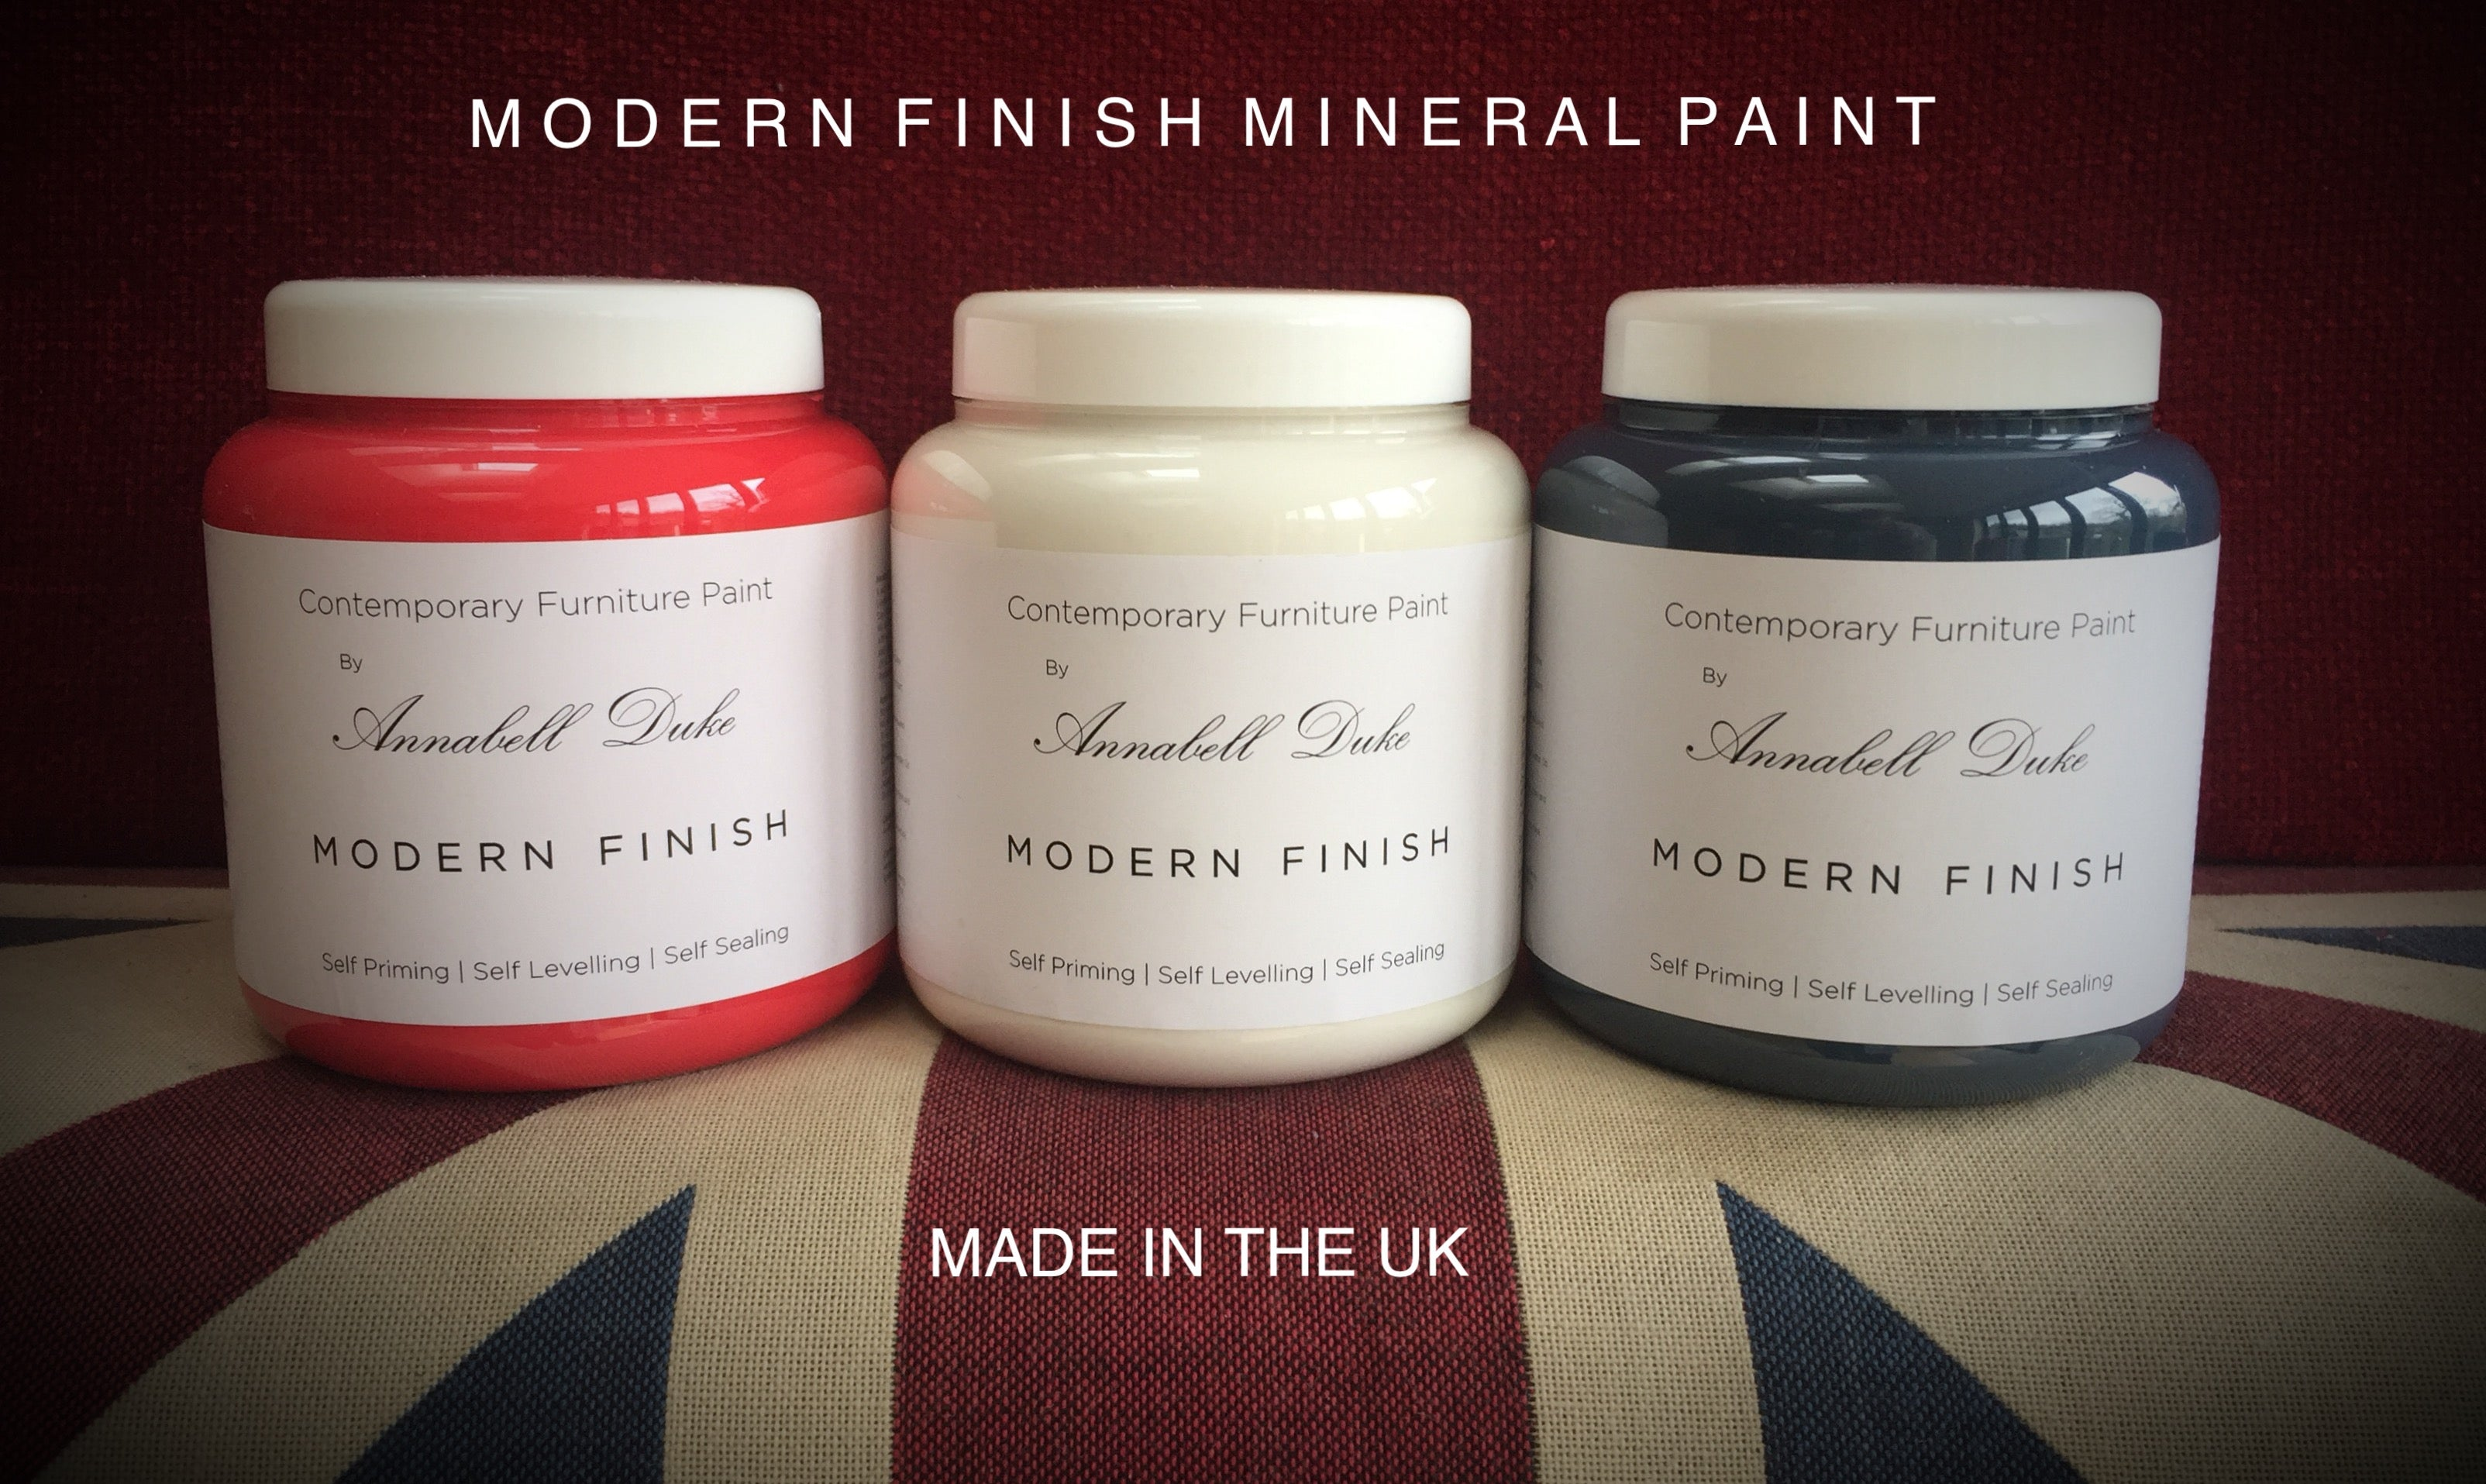 Annabell Duke Modern Finish Mineral Paint - Made in the UK